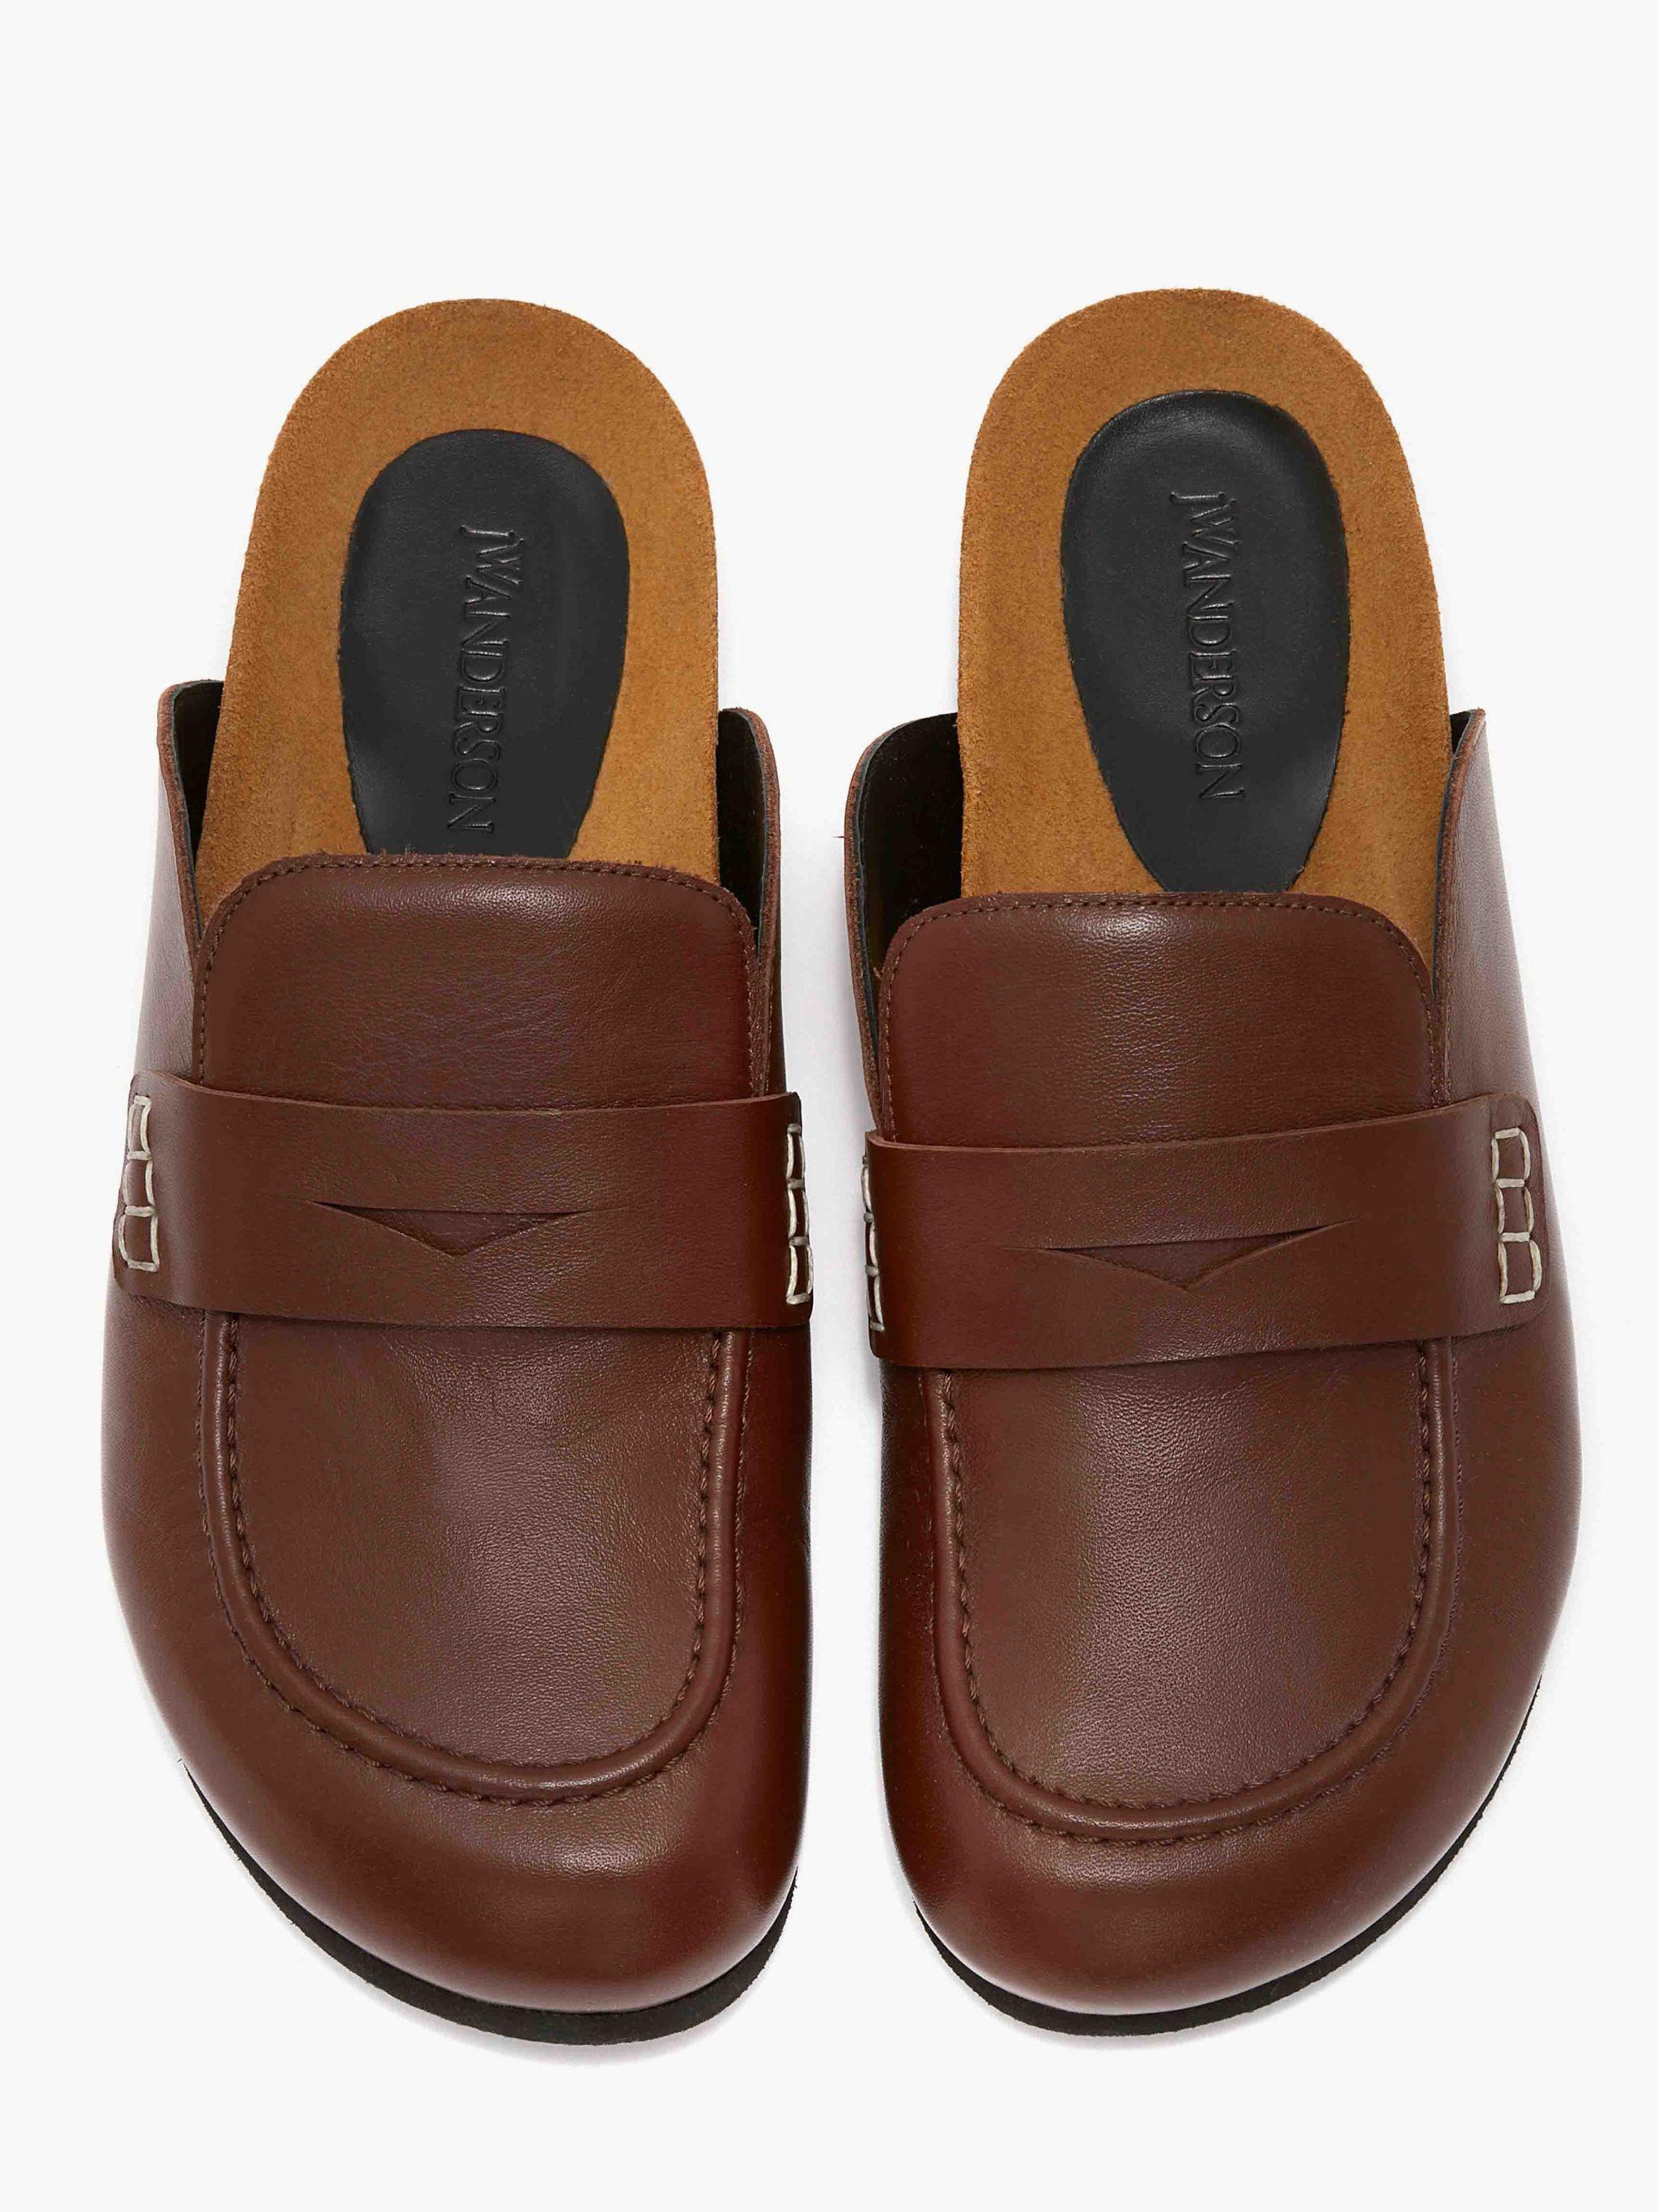 MEN'S LEATHER LOAFER MULES 3